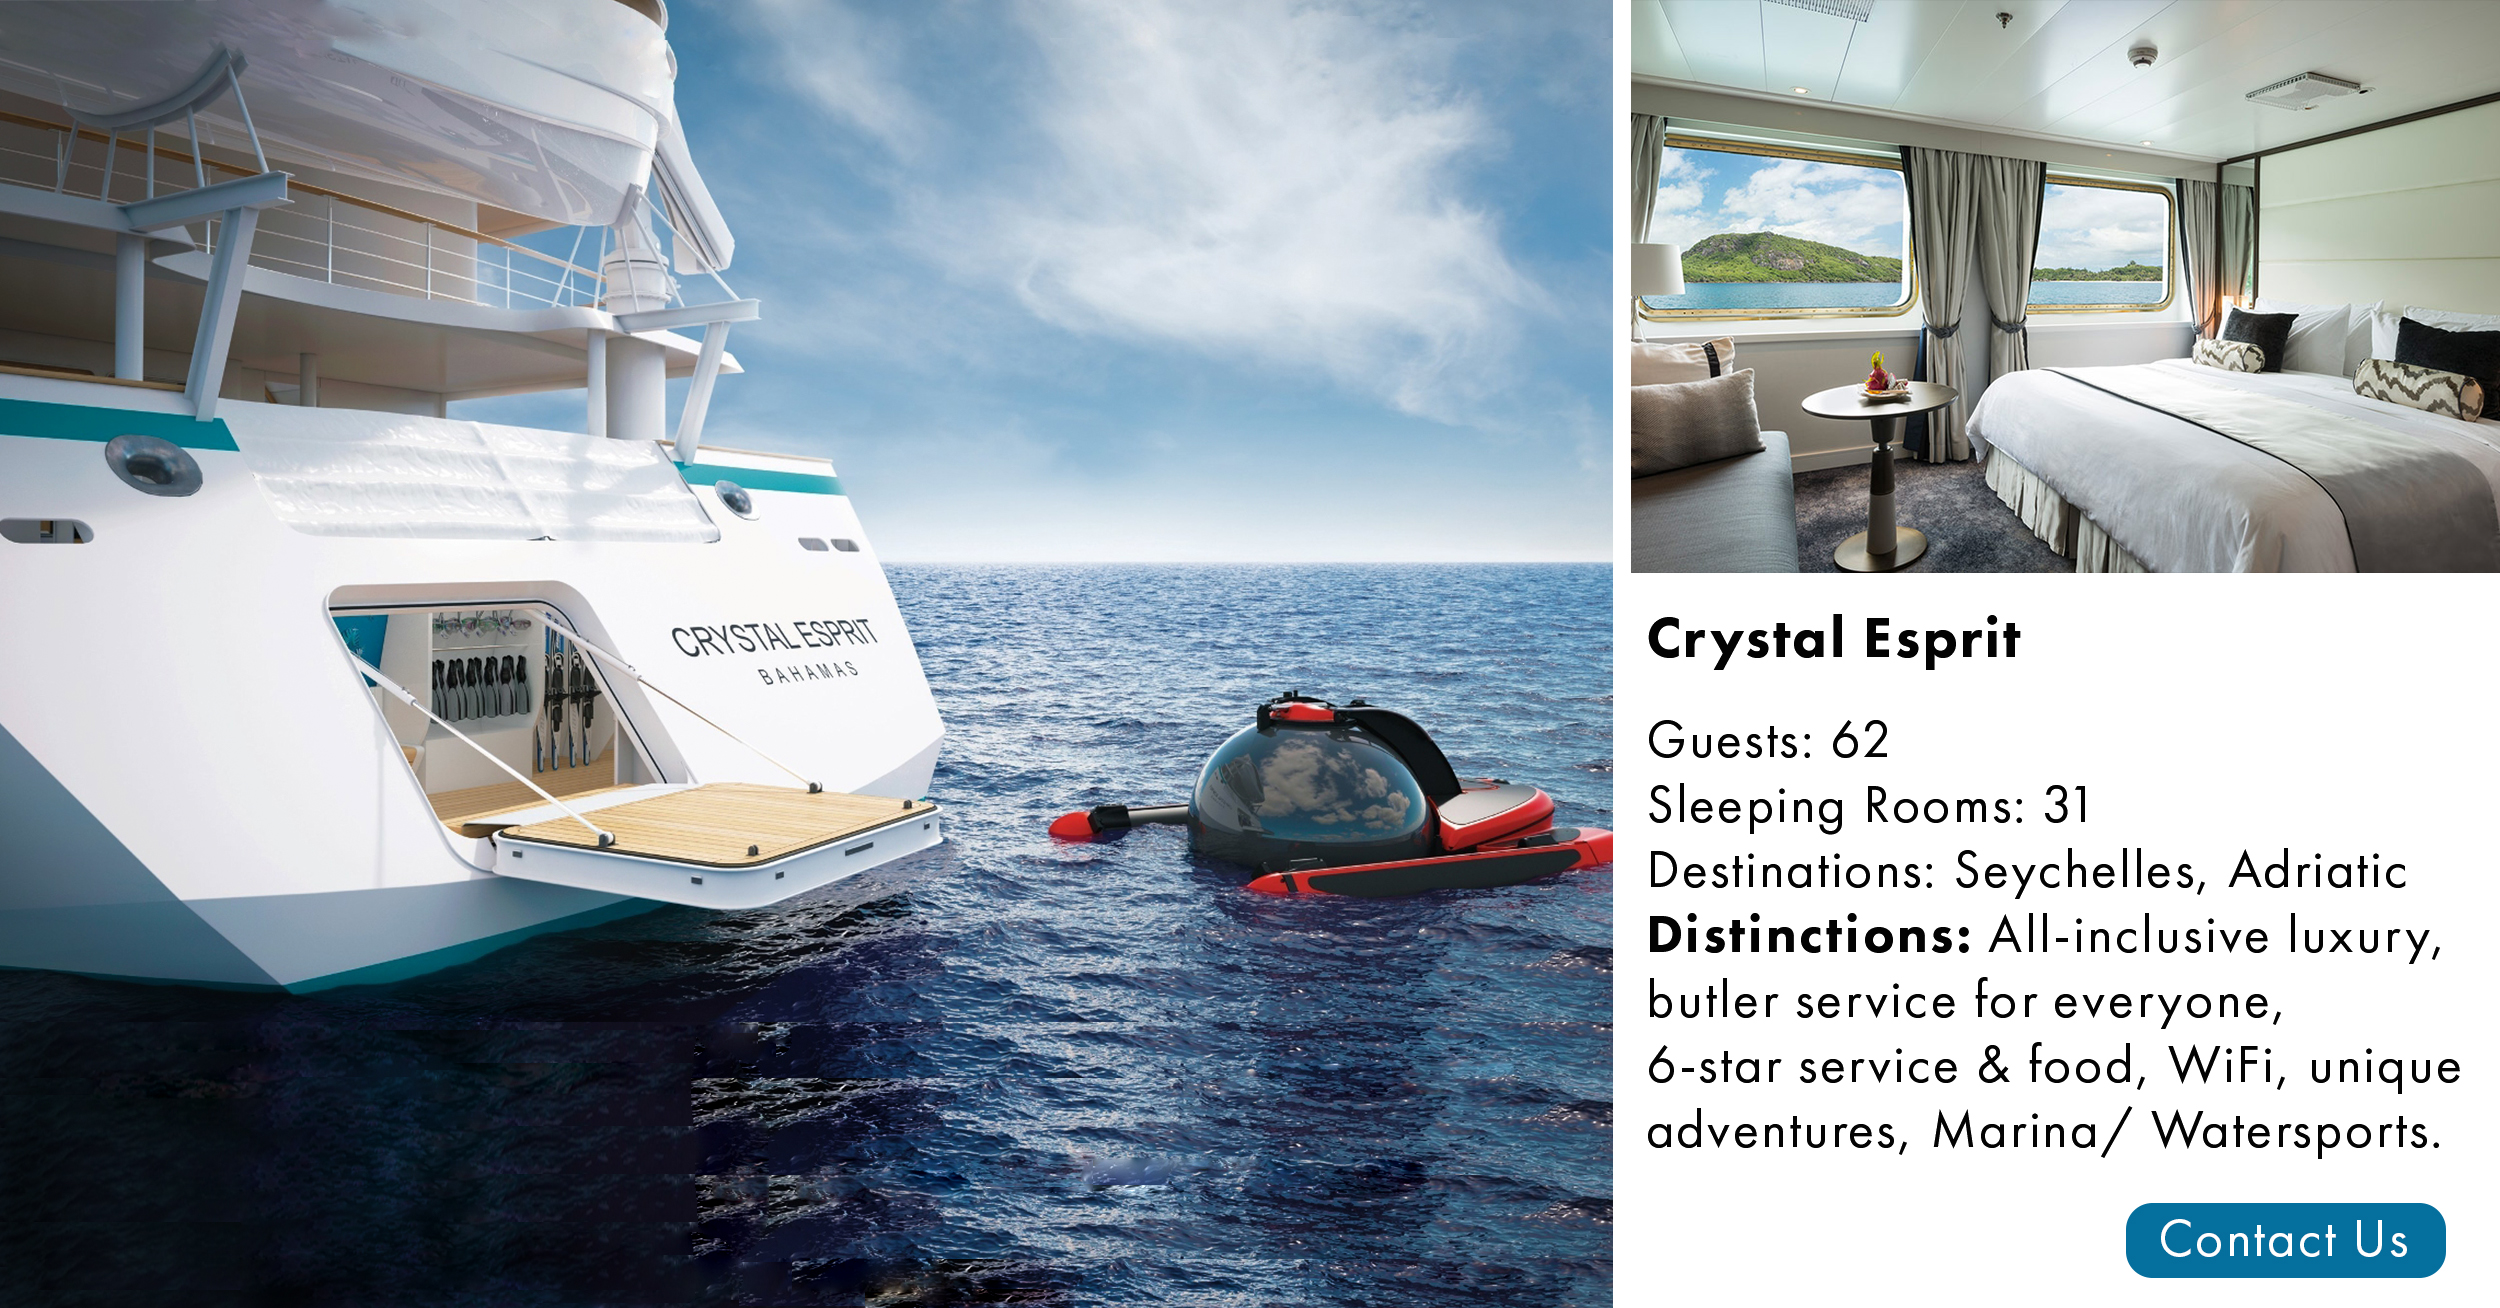 Crystal Espirit